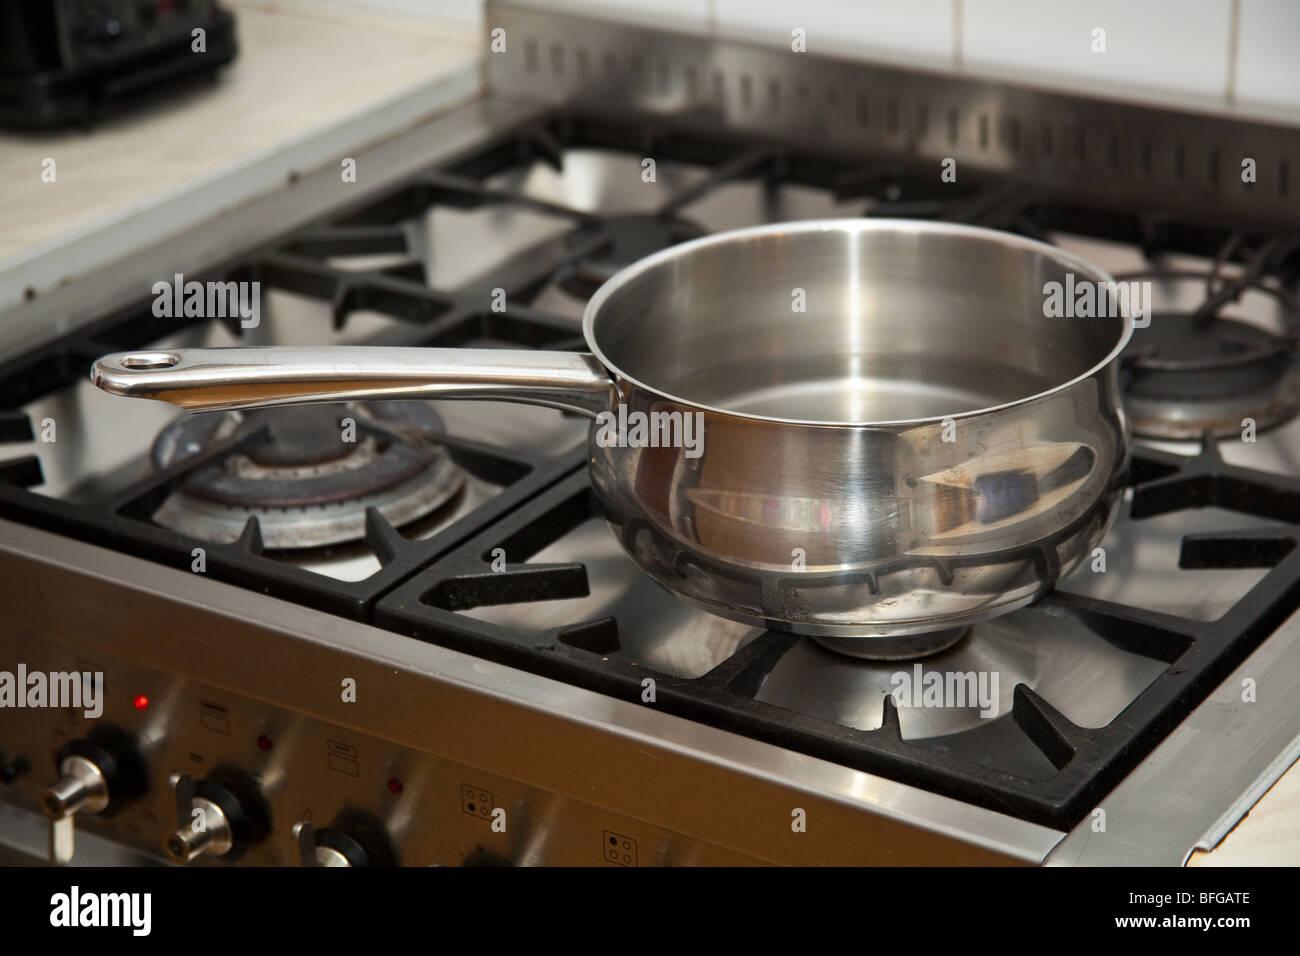 Pan of water boiling on a gas stove. - Stock Image